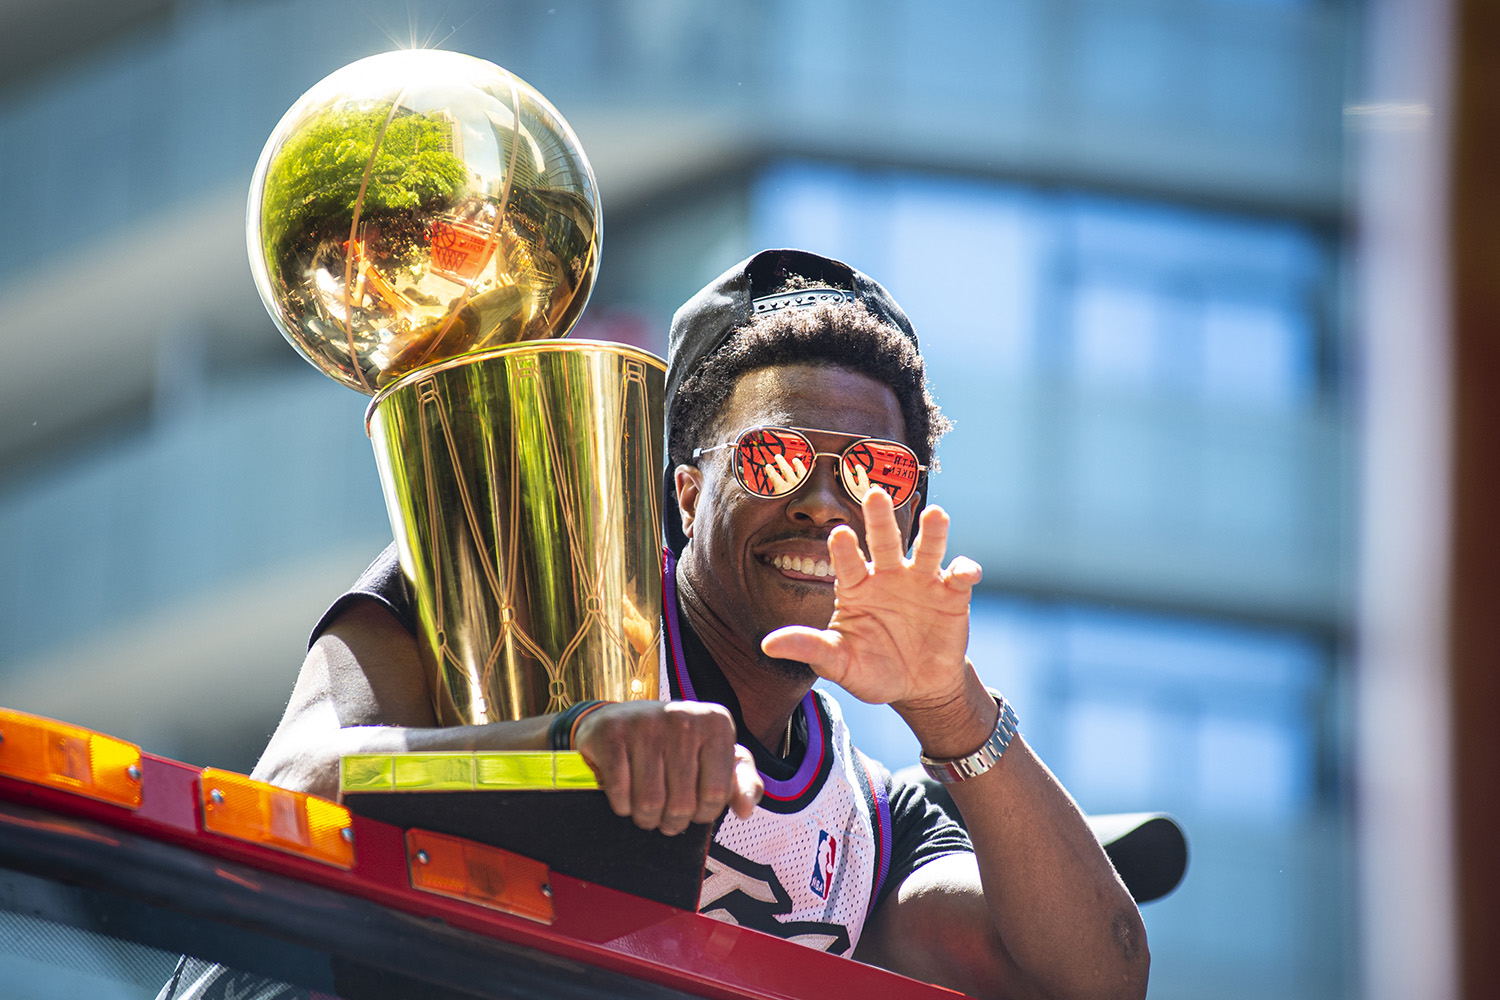 Toronto Raptors' Kyle Lowry hold the Larry O'Brien NBA Championship Trophy as the team celebrates its victory in the NBA final with a parade through downtown Toronto, Monday, June 17, 2019.